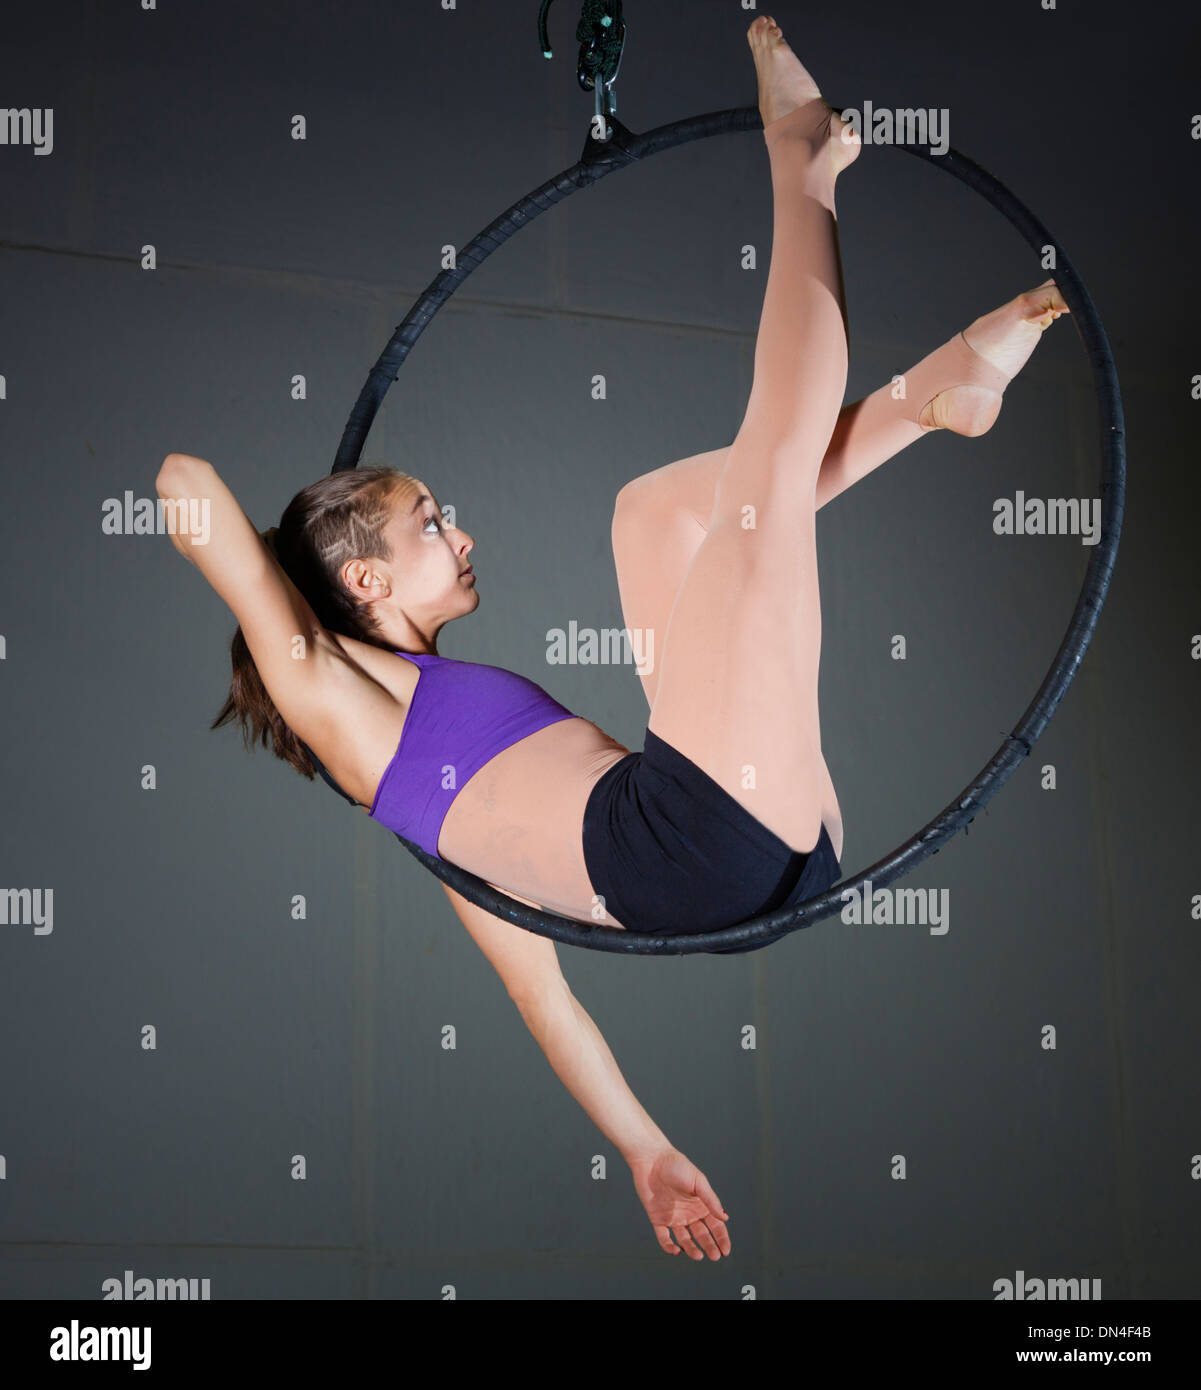 Gymnast performing aerial exercises - Stock Image